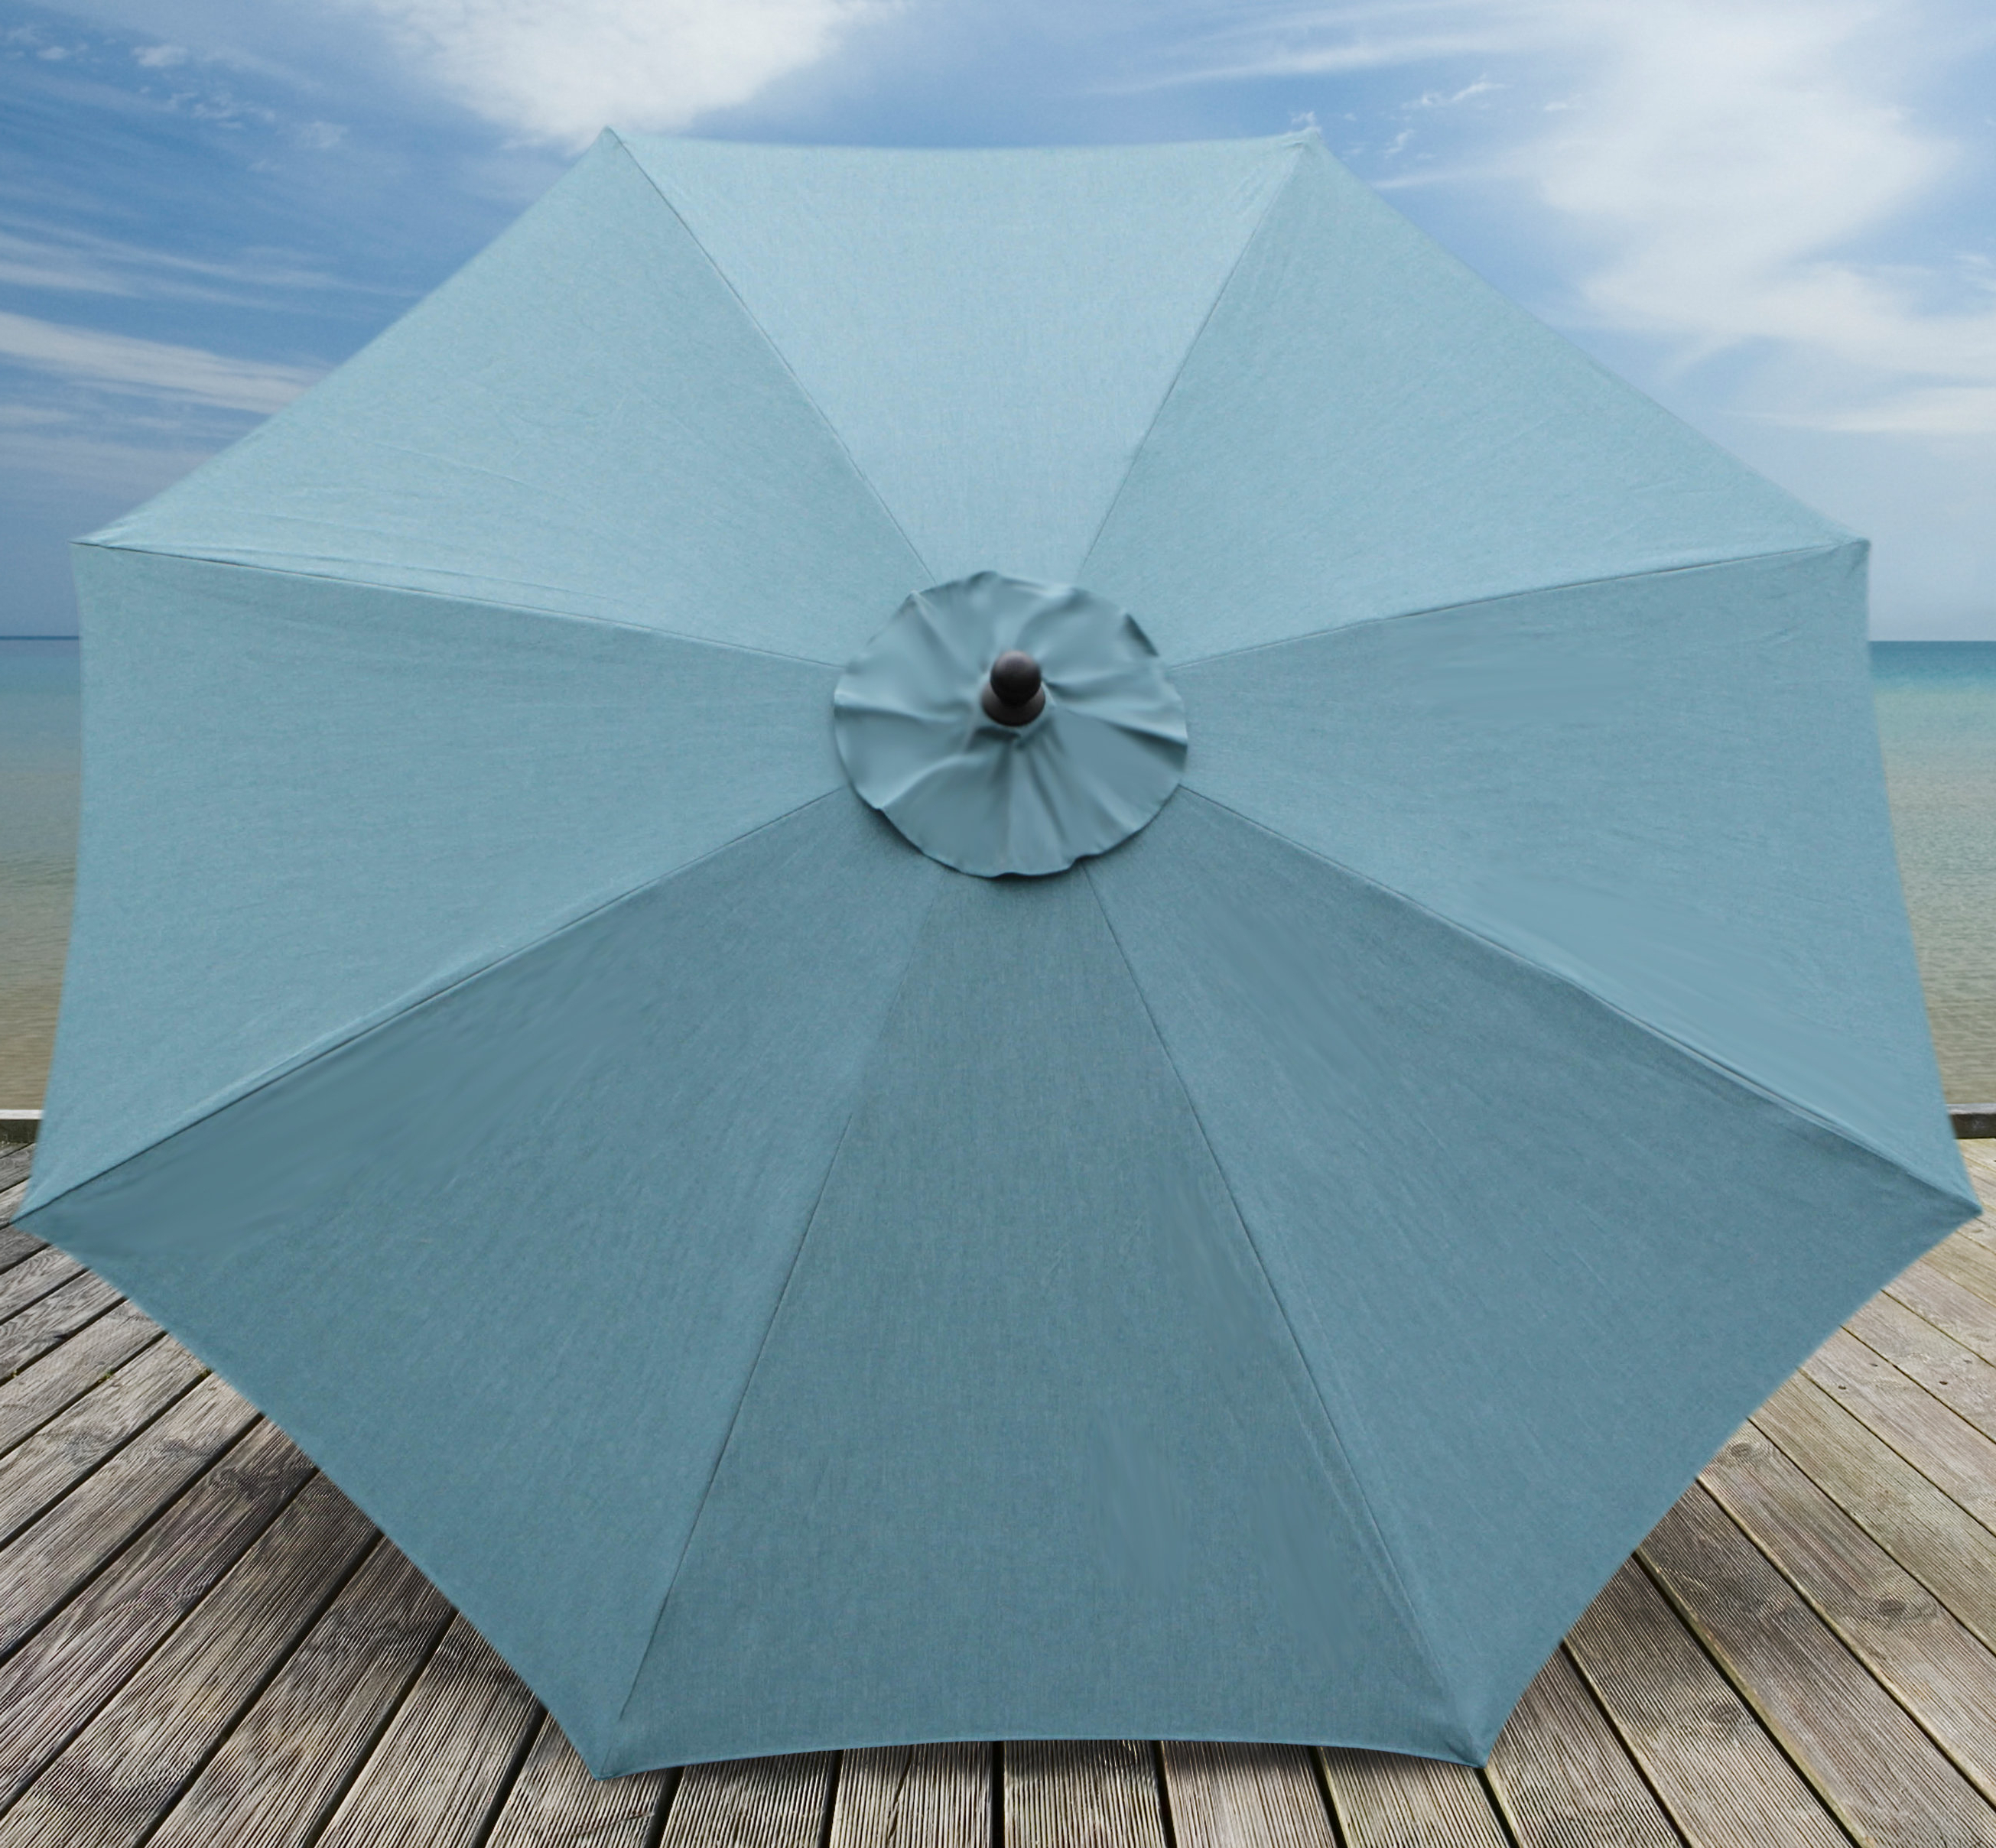 Mucci Madilyn Market Sunbrella Umbrellas Regarding Preferred Beachcrest Home Mucci Madilyn 10' Market Sunbrella Umbrella (View 4 of 20)